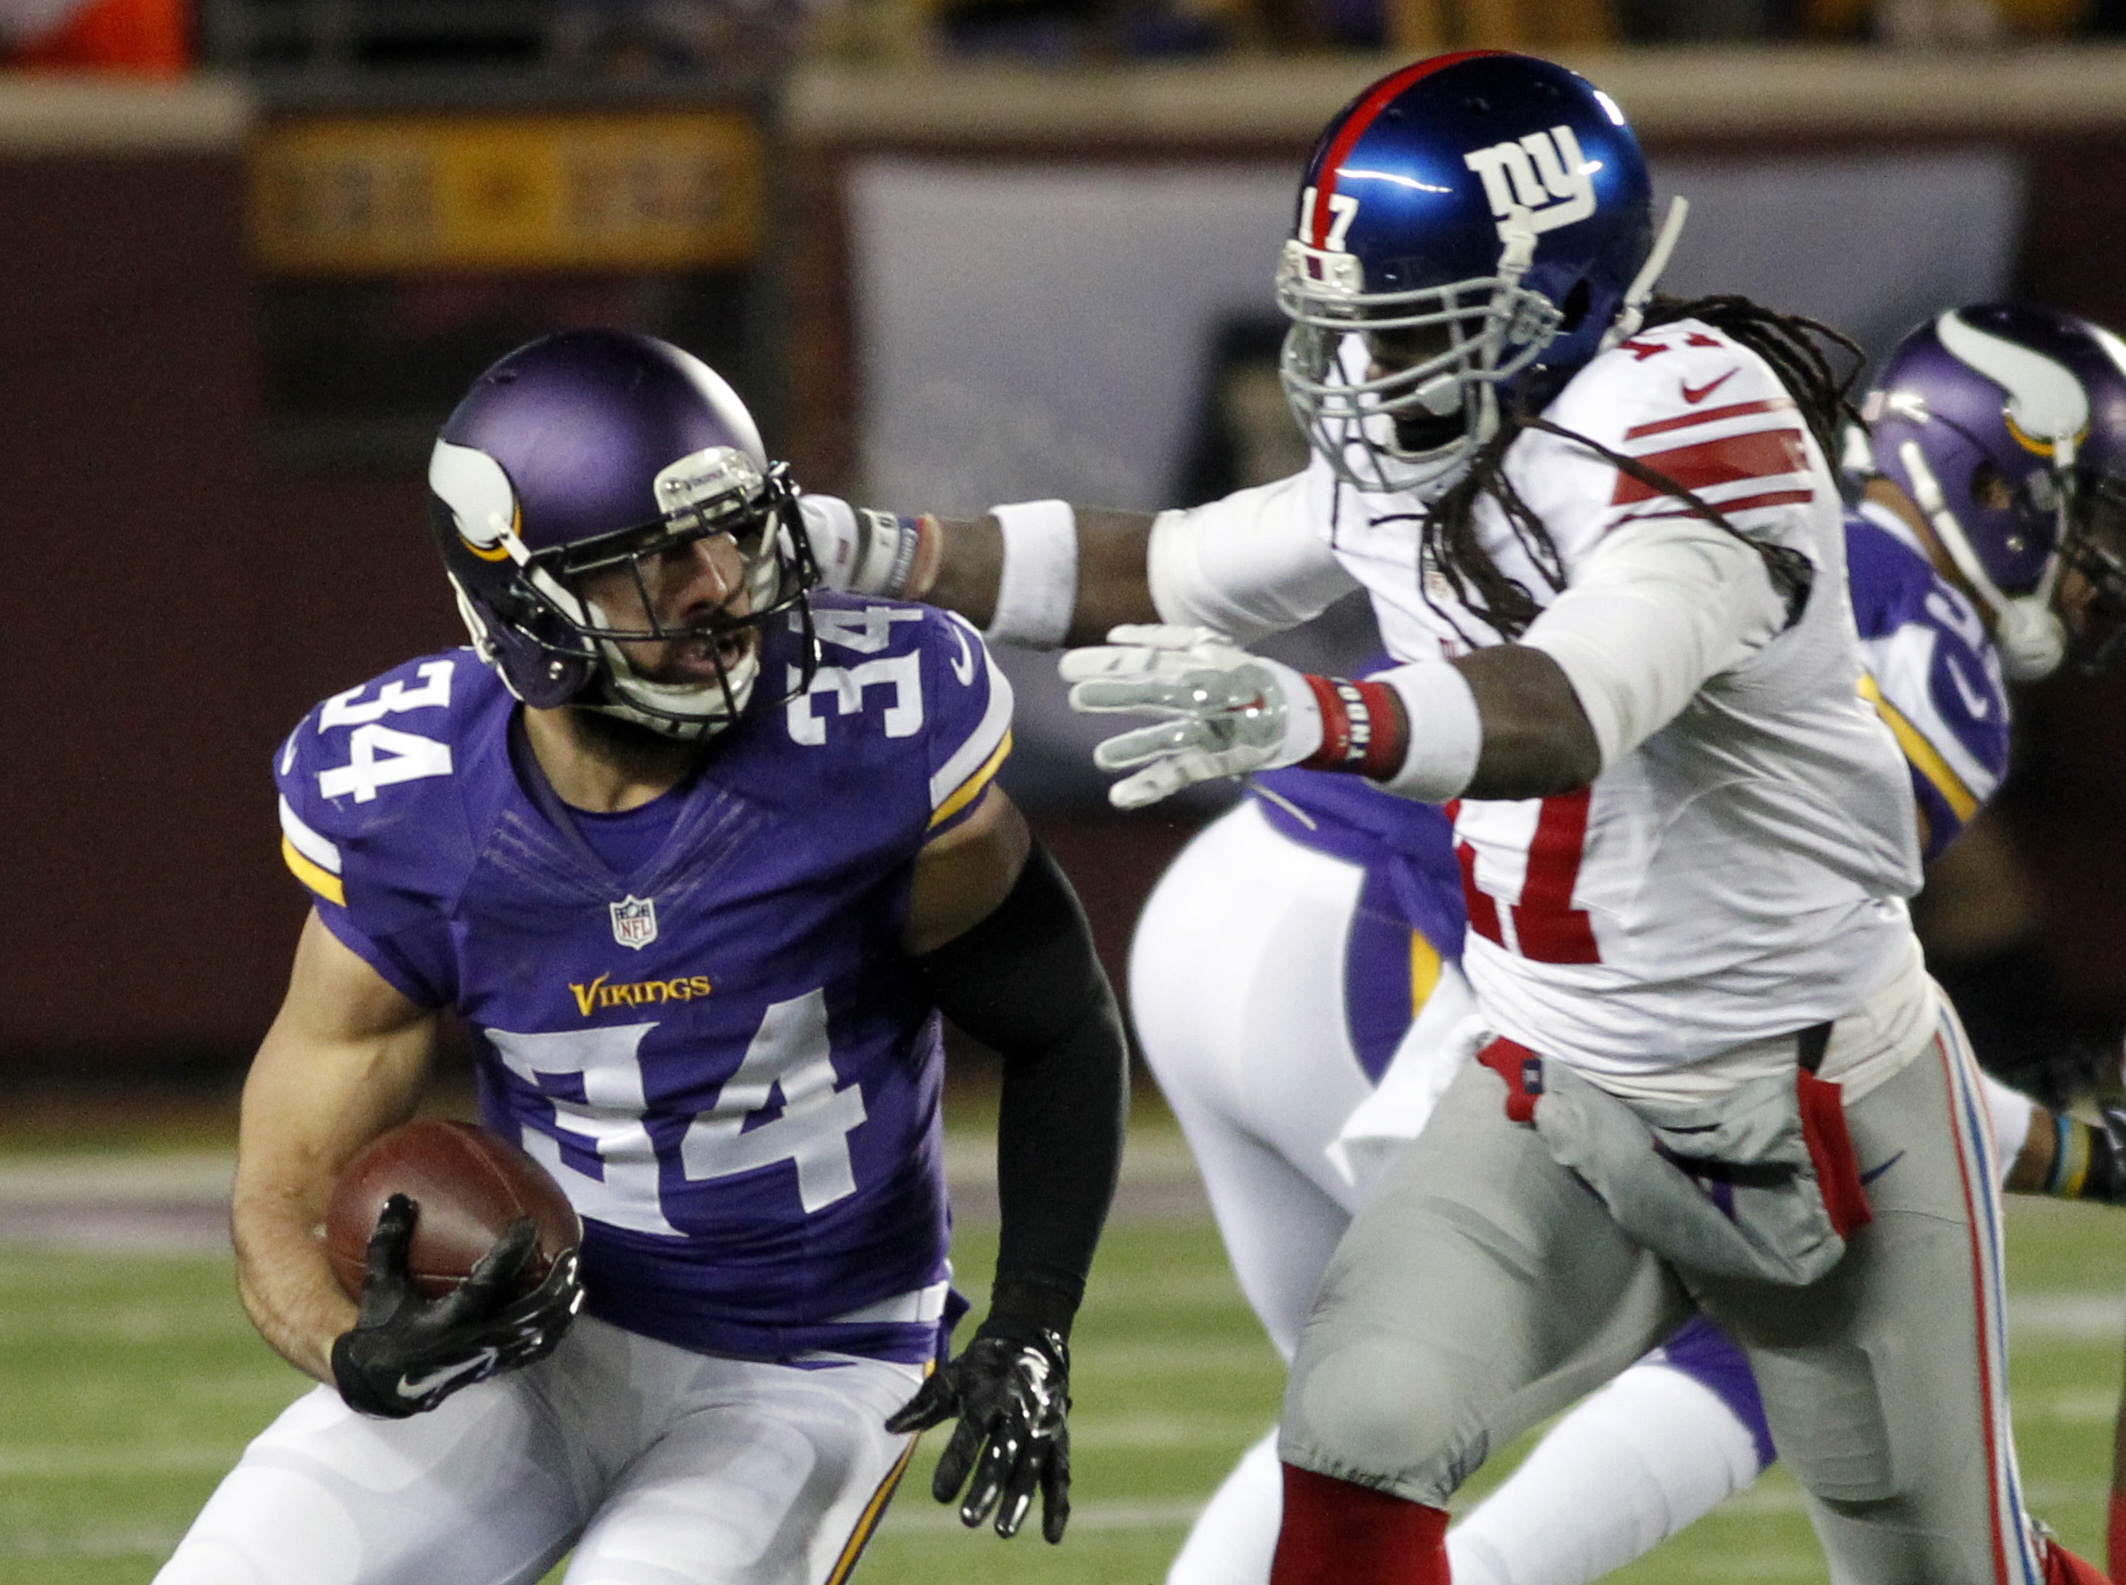 Minnesota Vikings strong safety Andrew Sendejo (34) is tackled by New York Giants wide receiver Dwayne Harris (17) after Sendejo intercepted a pass during the first half of an NFL football game Sunday, Dec. 27, 2015, in Minneapolis. (AP Photo/Andy Clayton